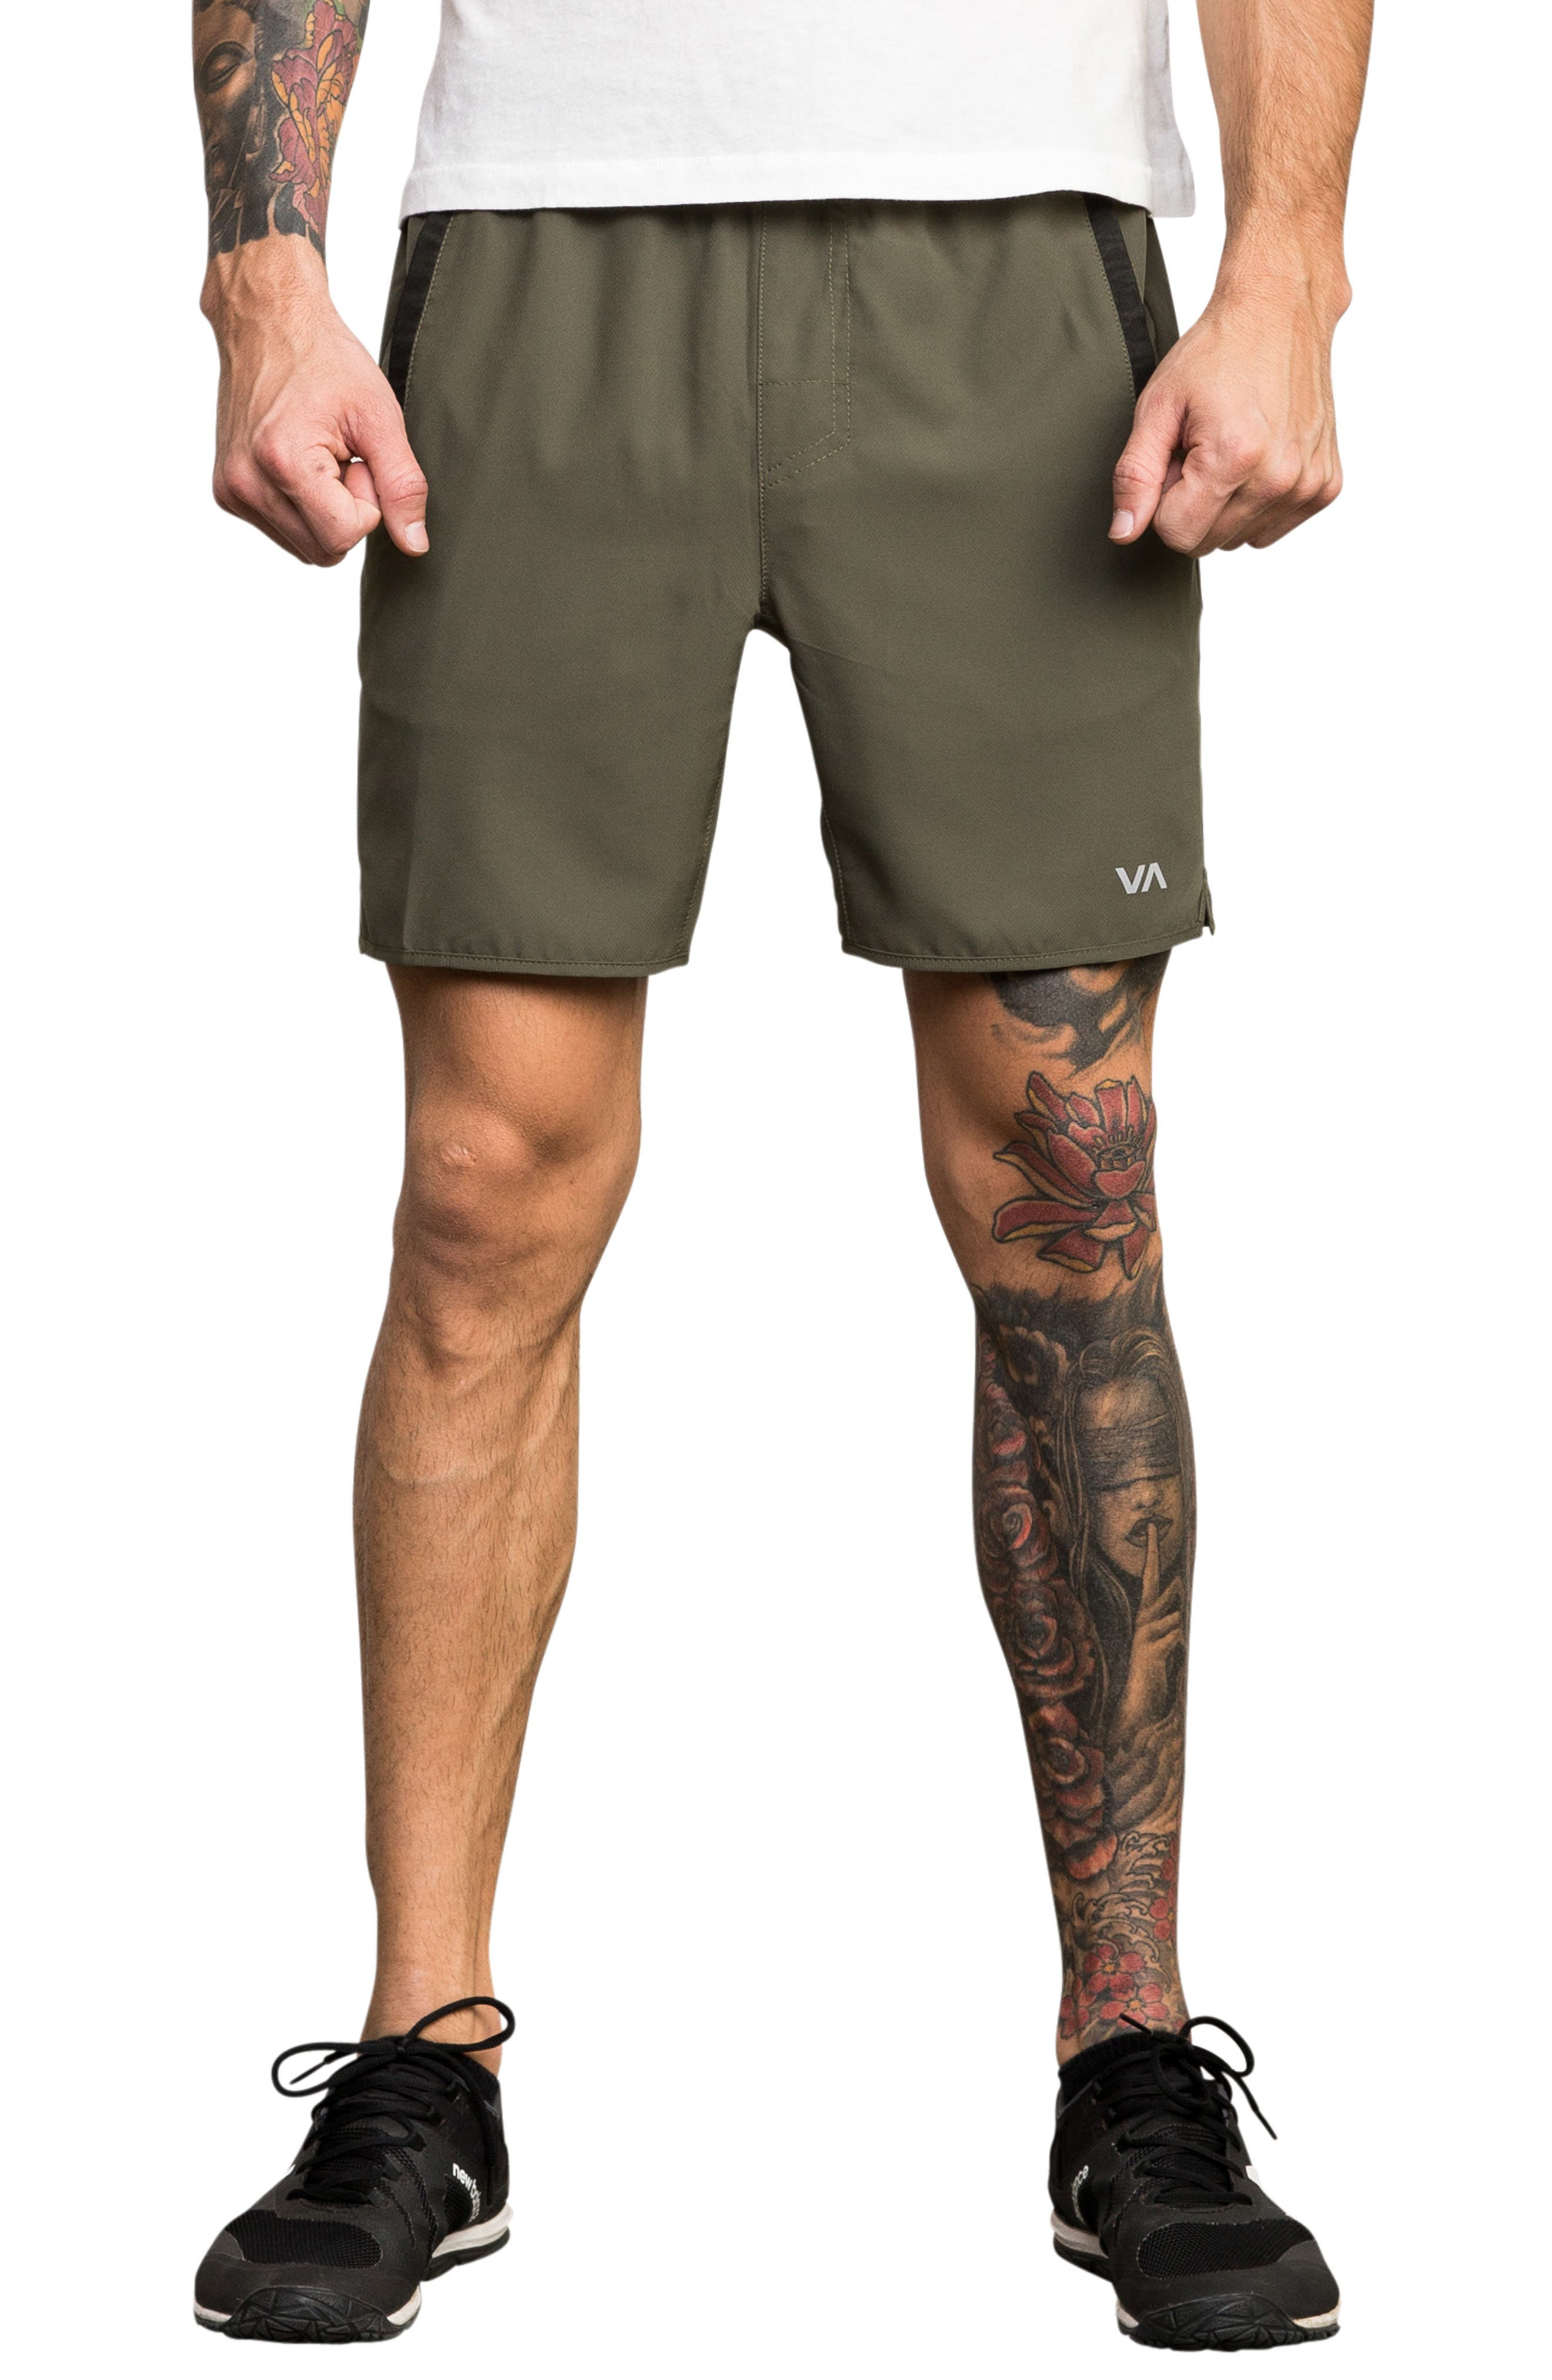 Yogger III Athletic Shorts,                         Main,                         color, OLIVE